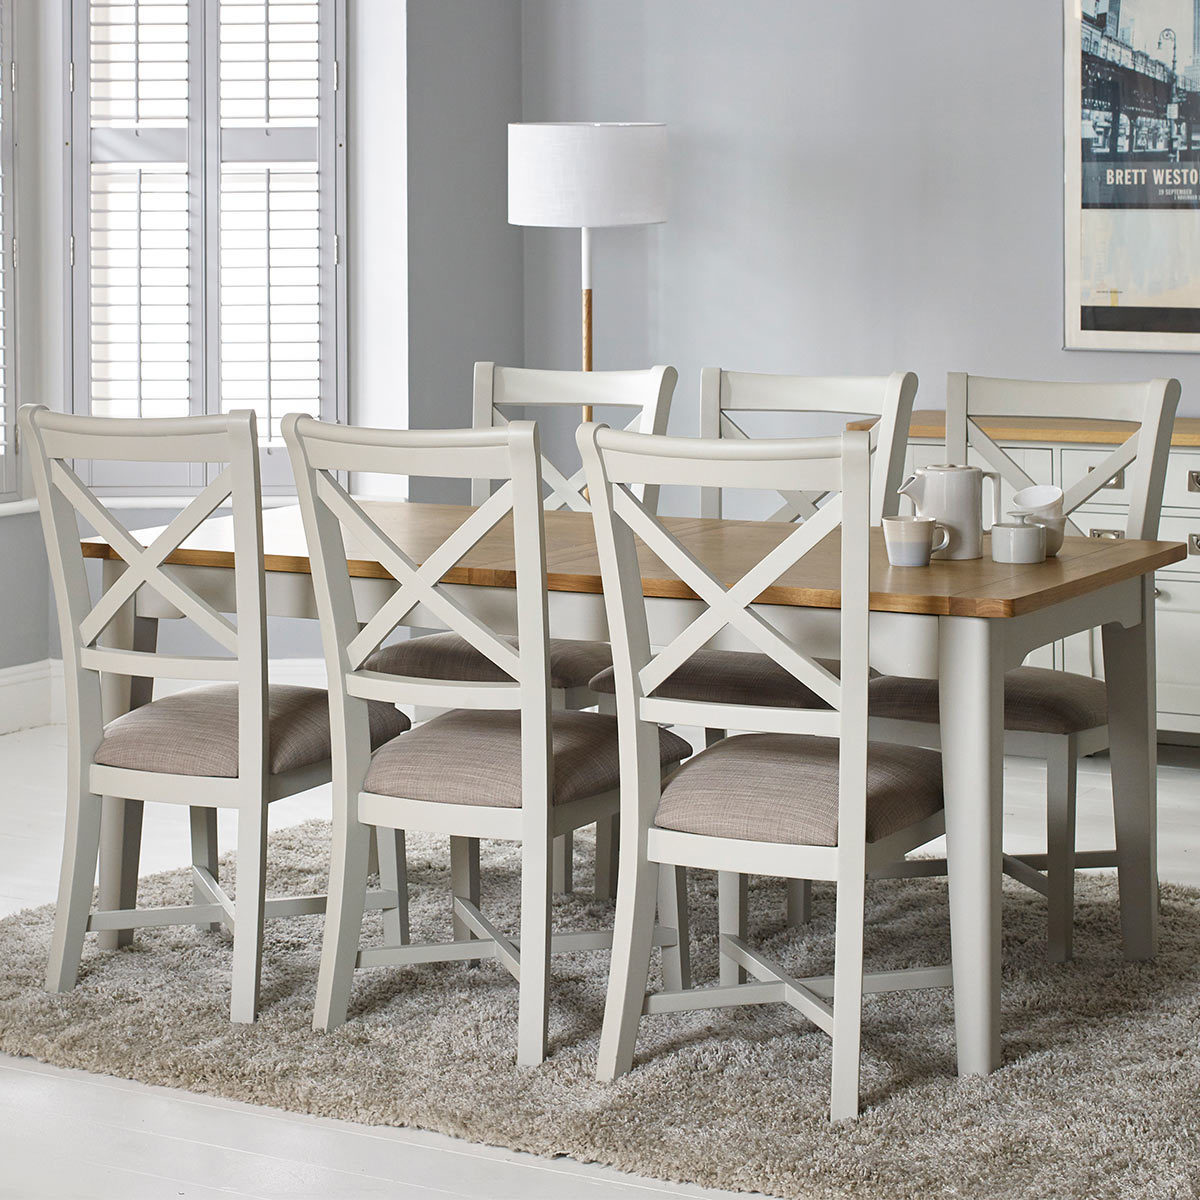 Bordeaux Painted Ivory Large Extending Dining Table 6 Chairs Seats 6 8 Costco Uk